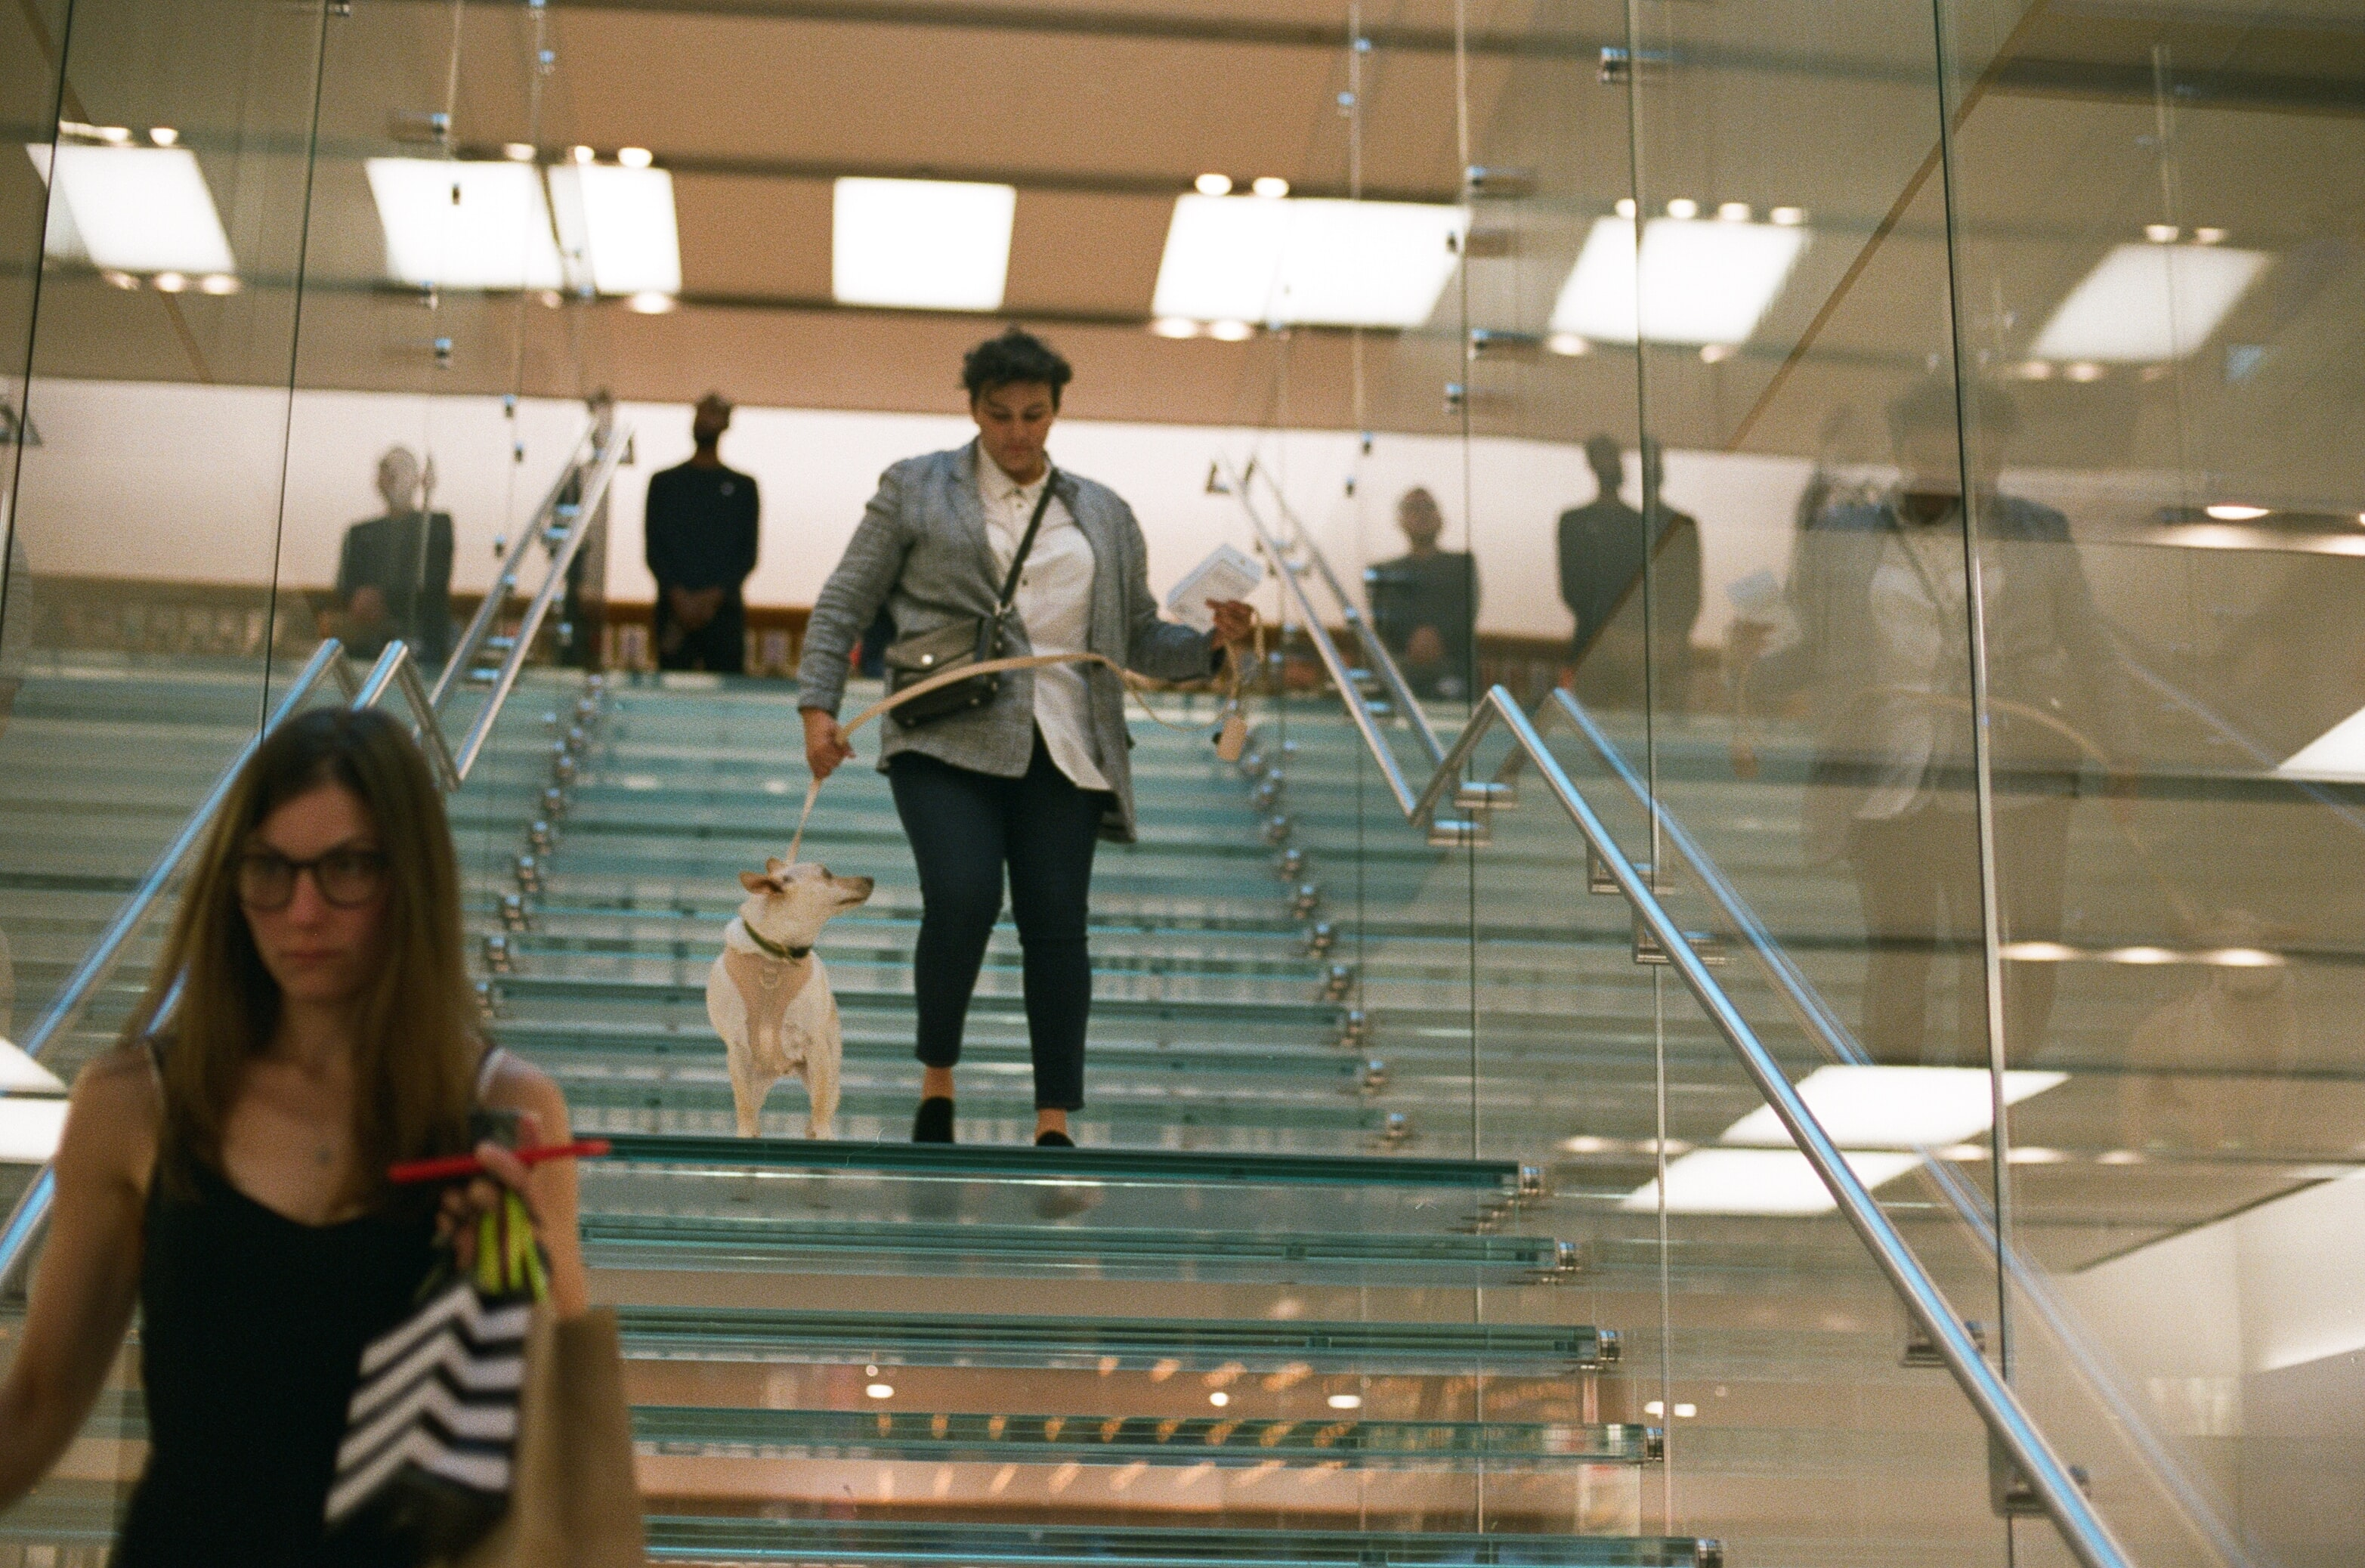 A woman in a blue jacket and jeans walking a small white dog down a glass staircase.